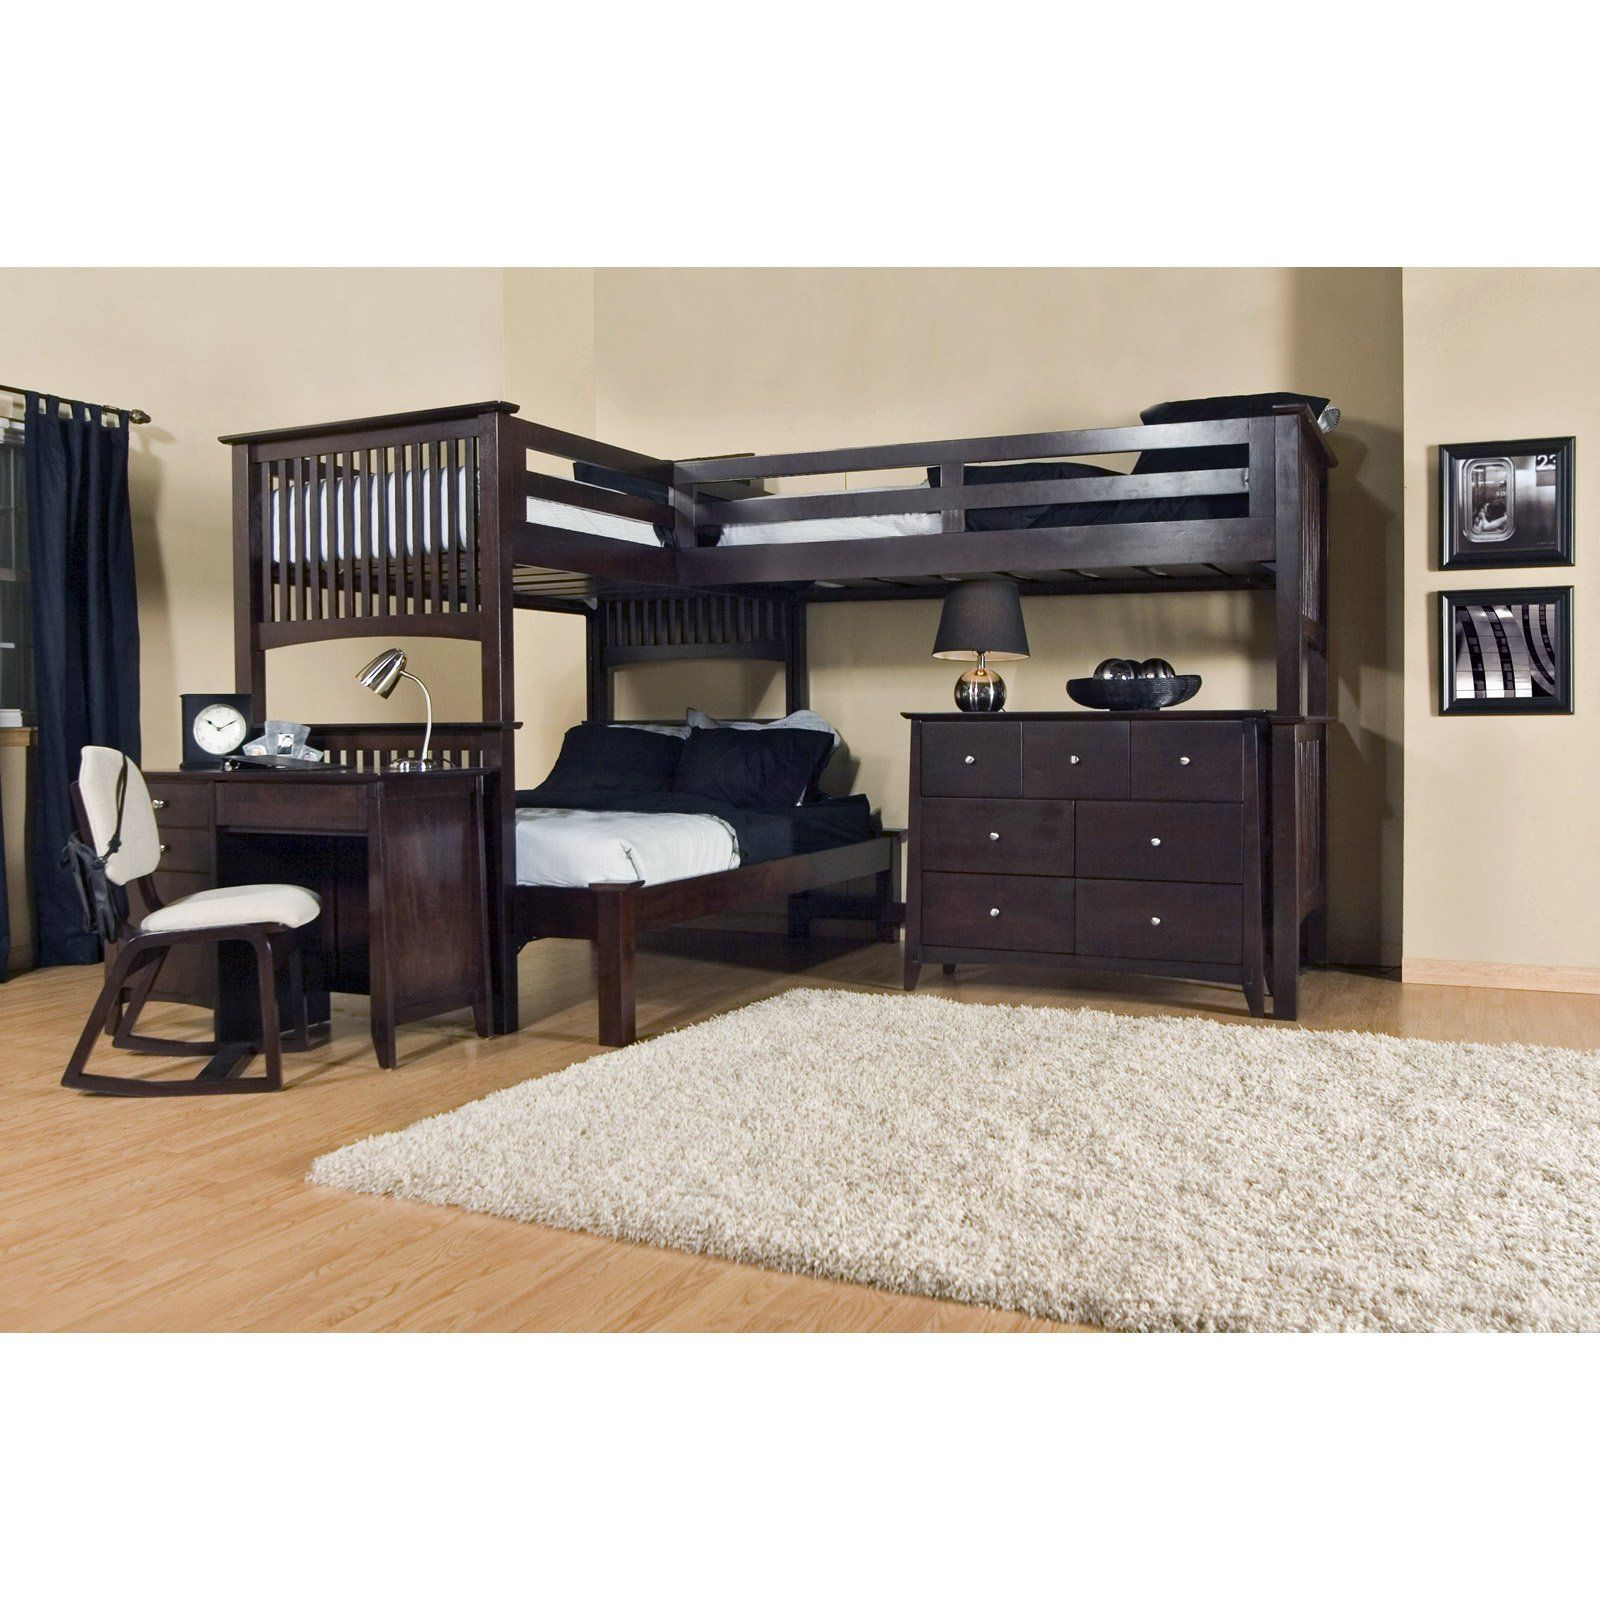 Mission Triple Lindy Loft Full 3rd Bed Bunk Beds At